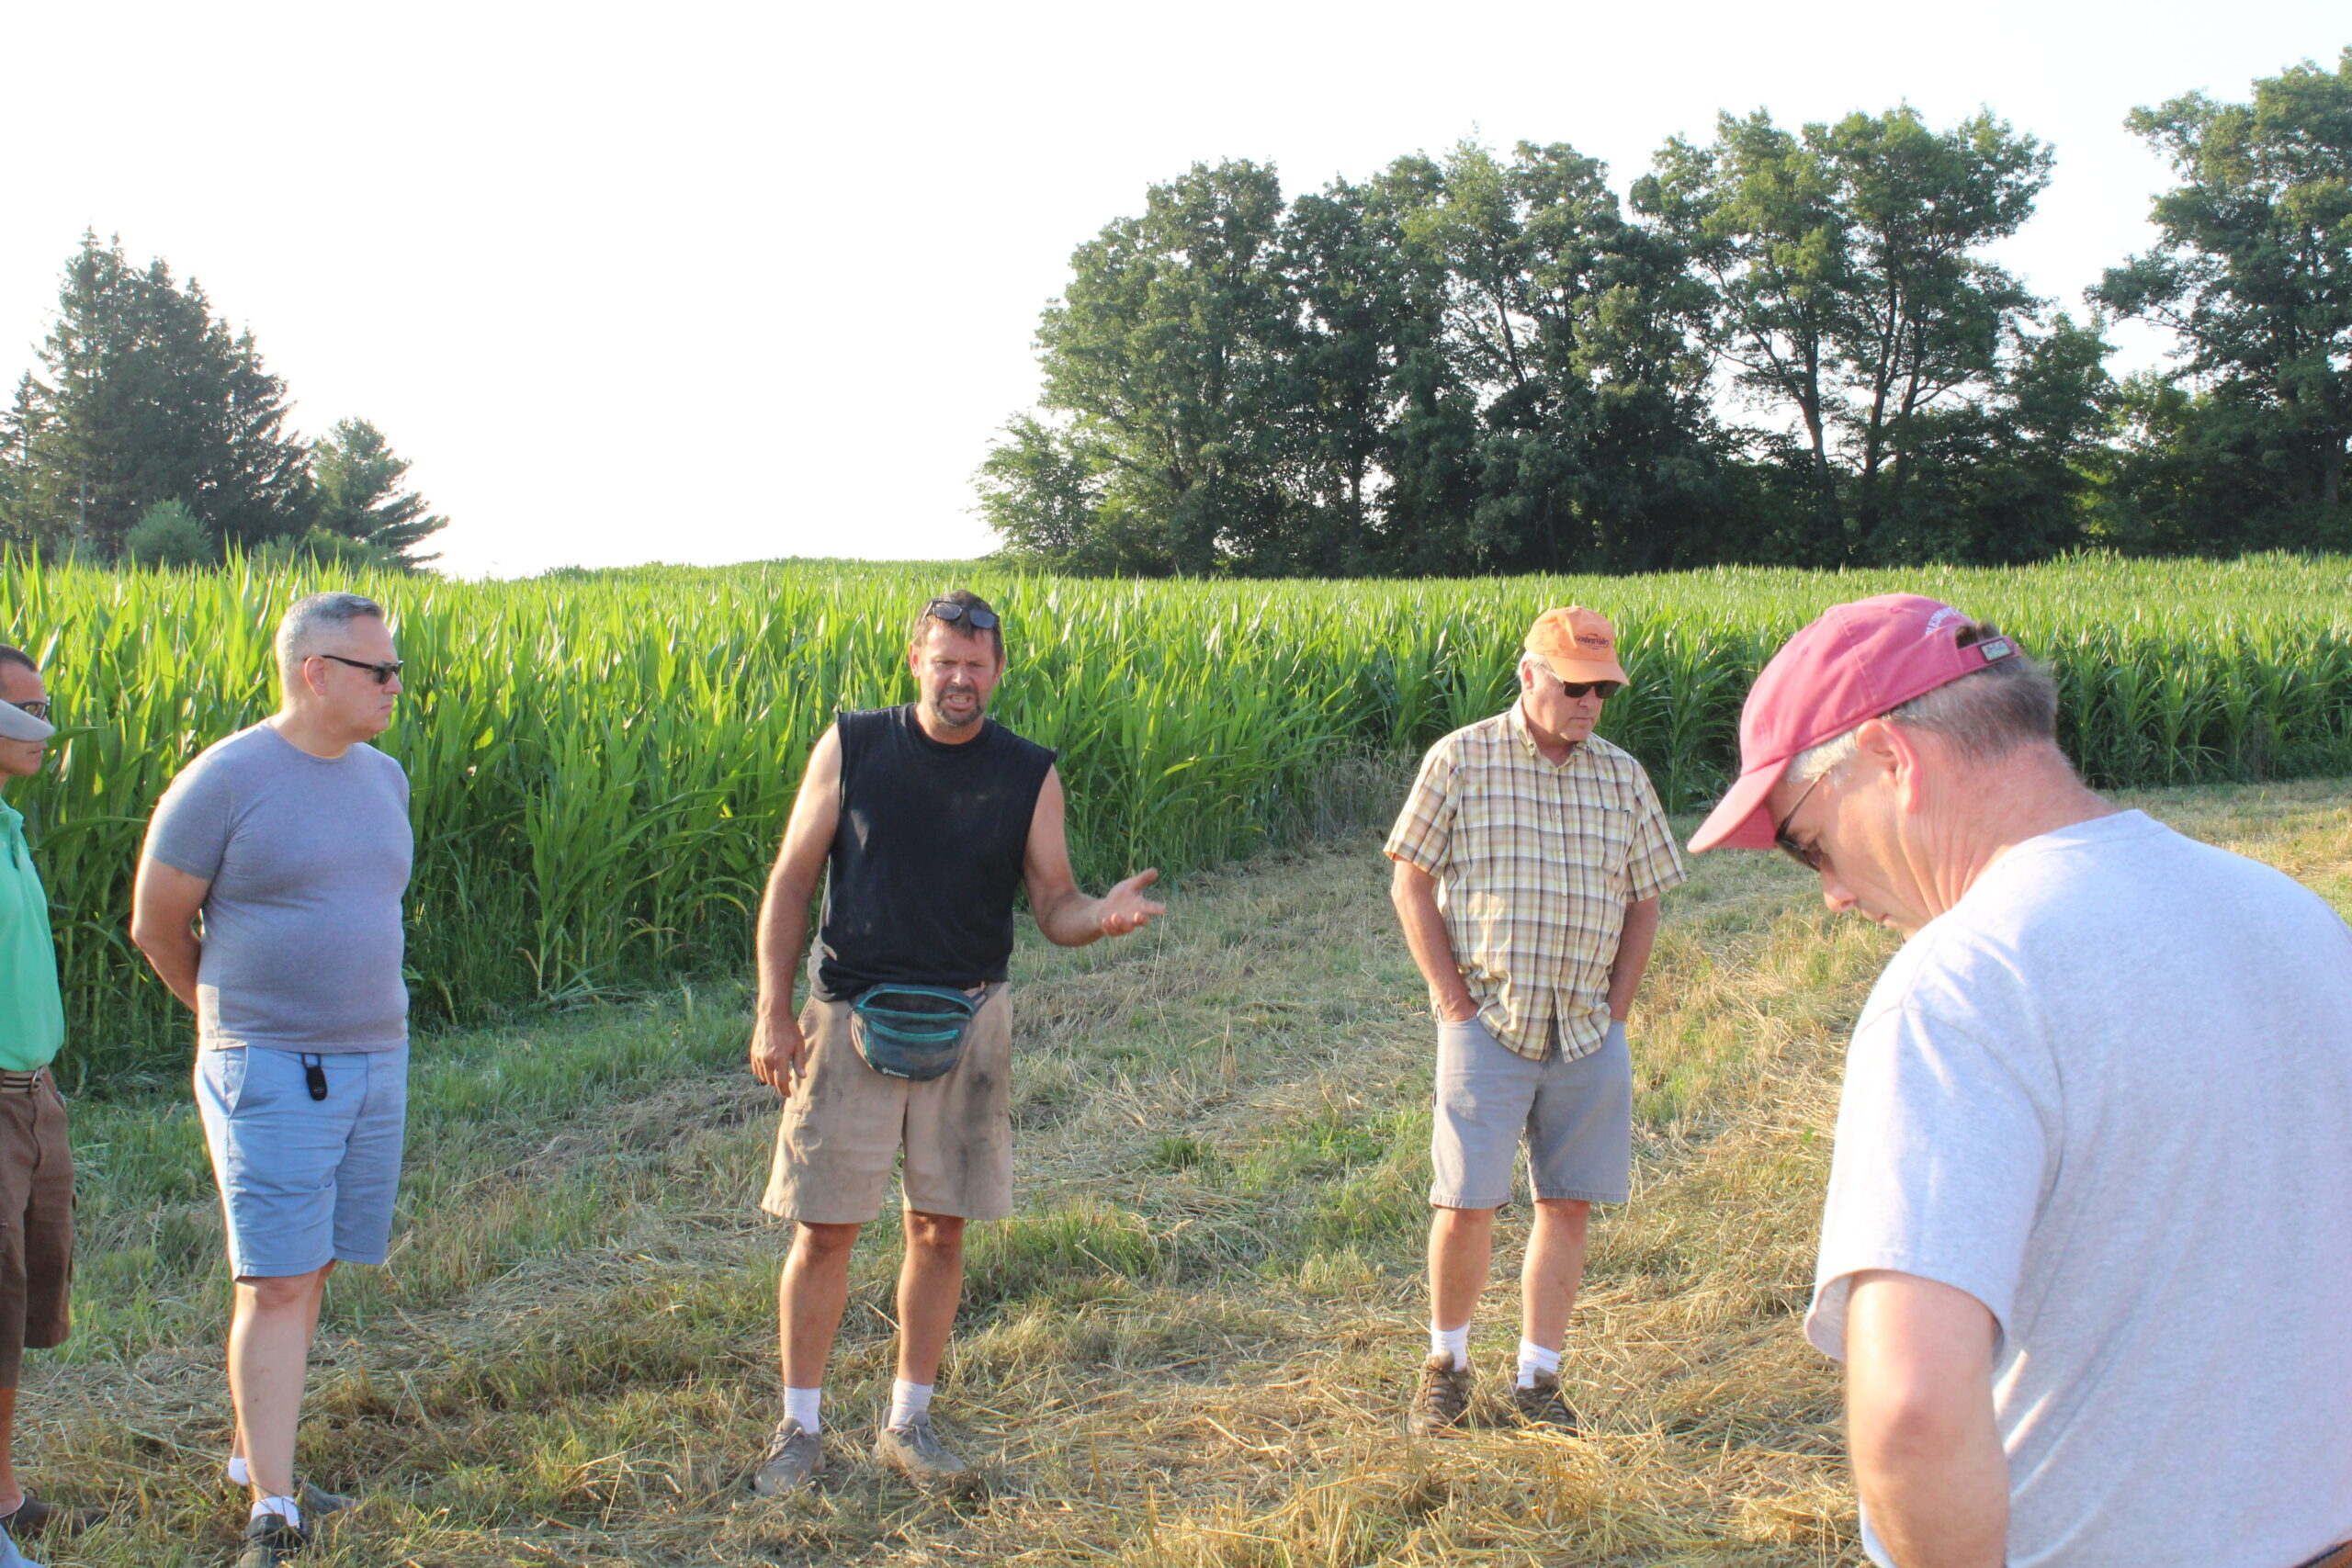 Dairy and grain farmer Greg Friendshuh talks with participants at a Western Wisconsin Conservation Council field day in July at his farm in Clear Lake.